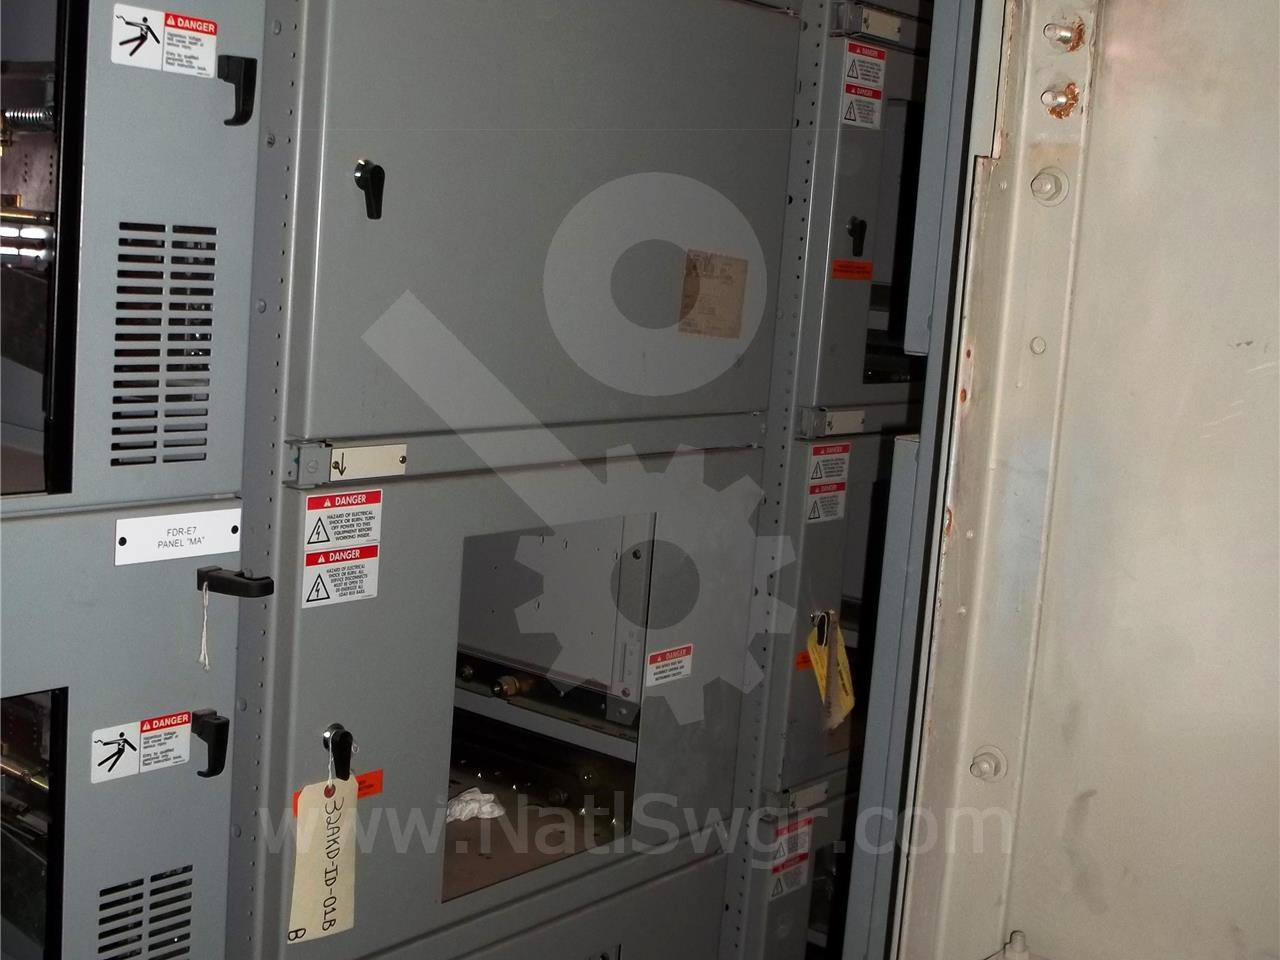 AKD-10 3200A GE / General Electric AKD-10 FUSED INDOOR SWITCHGEAR 3-800A FEEDER, CONTROL SECTION